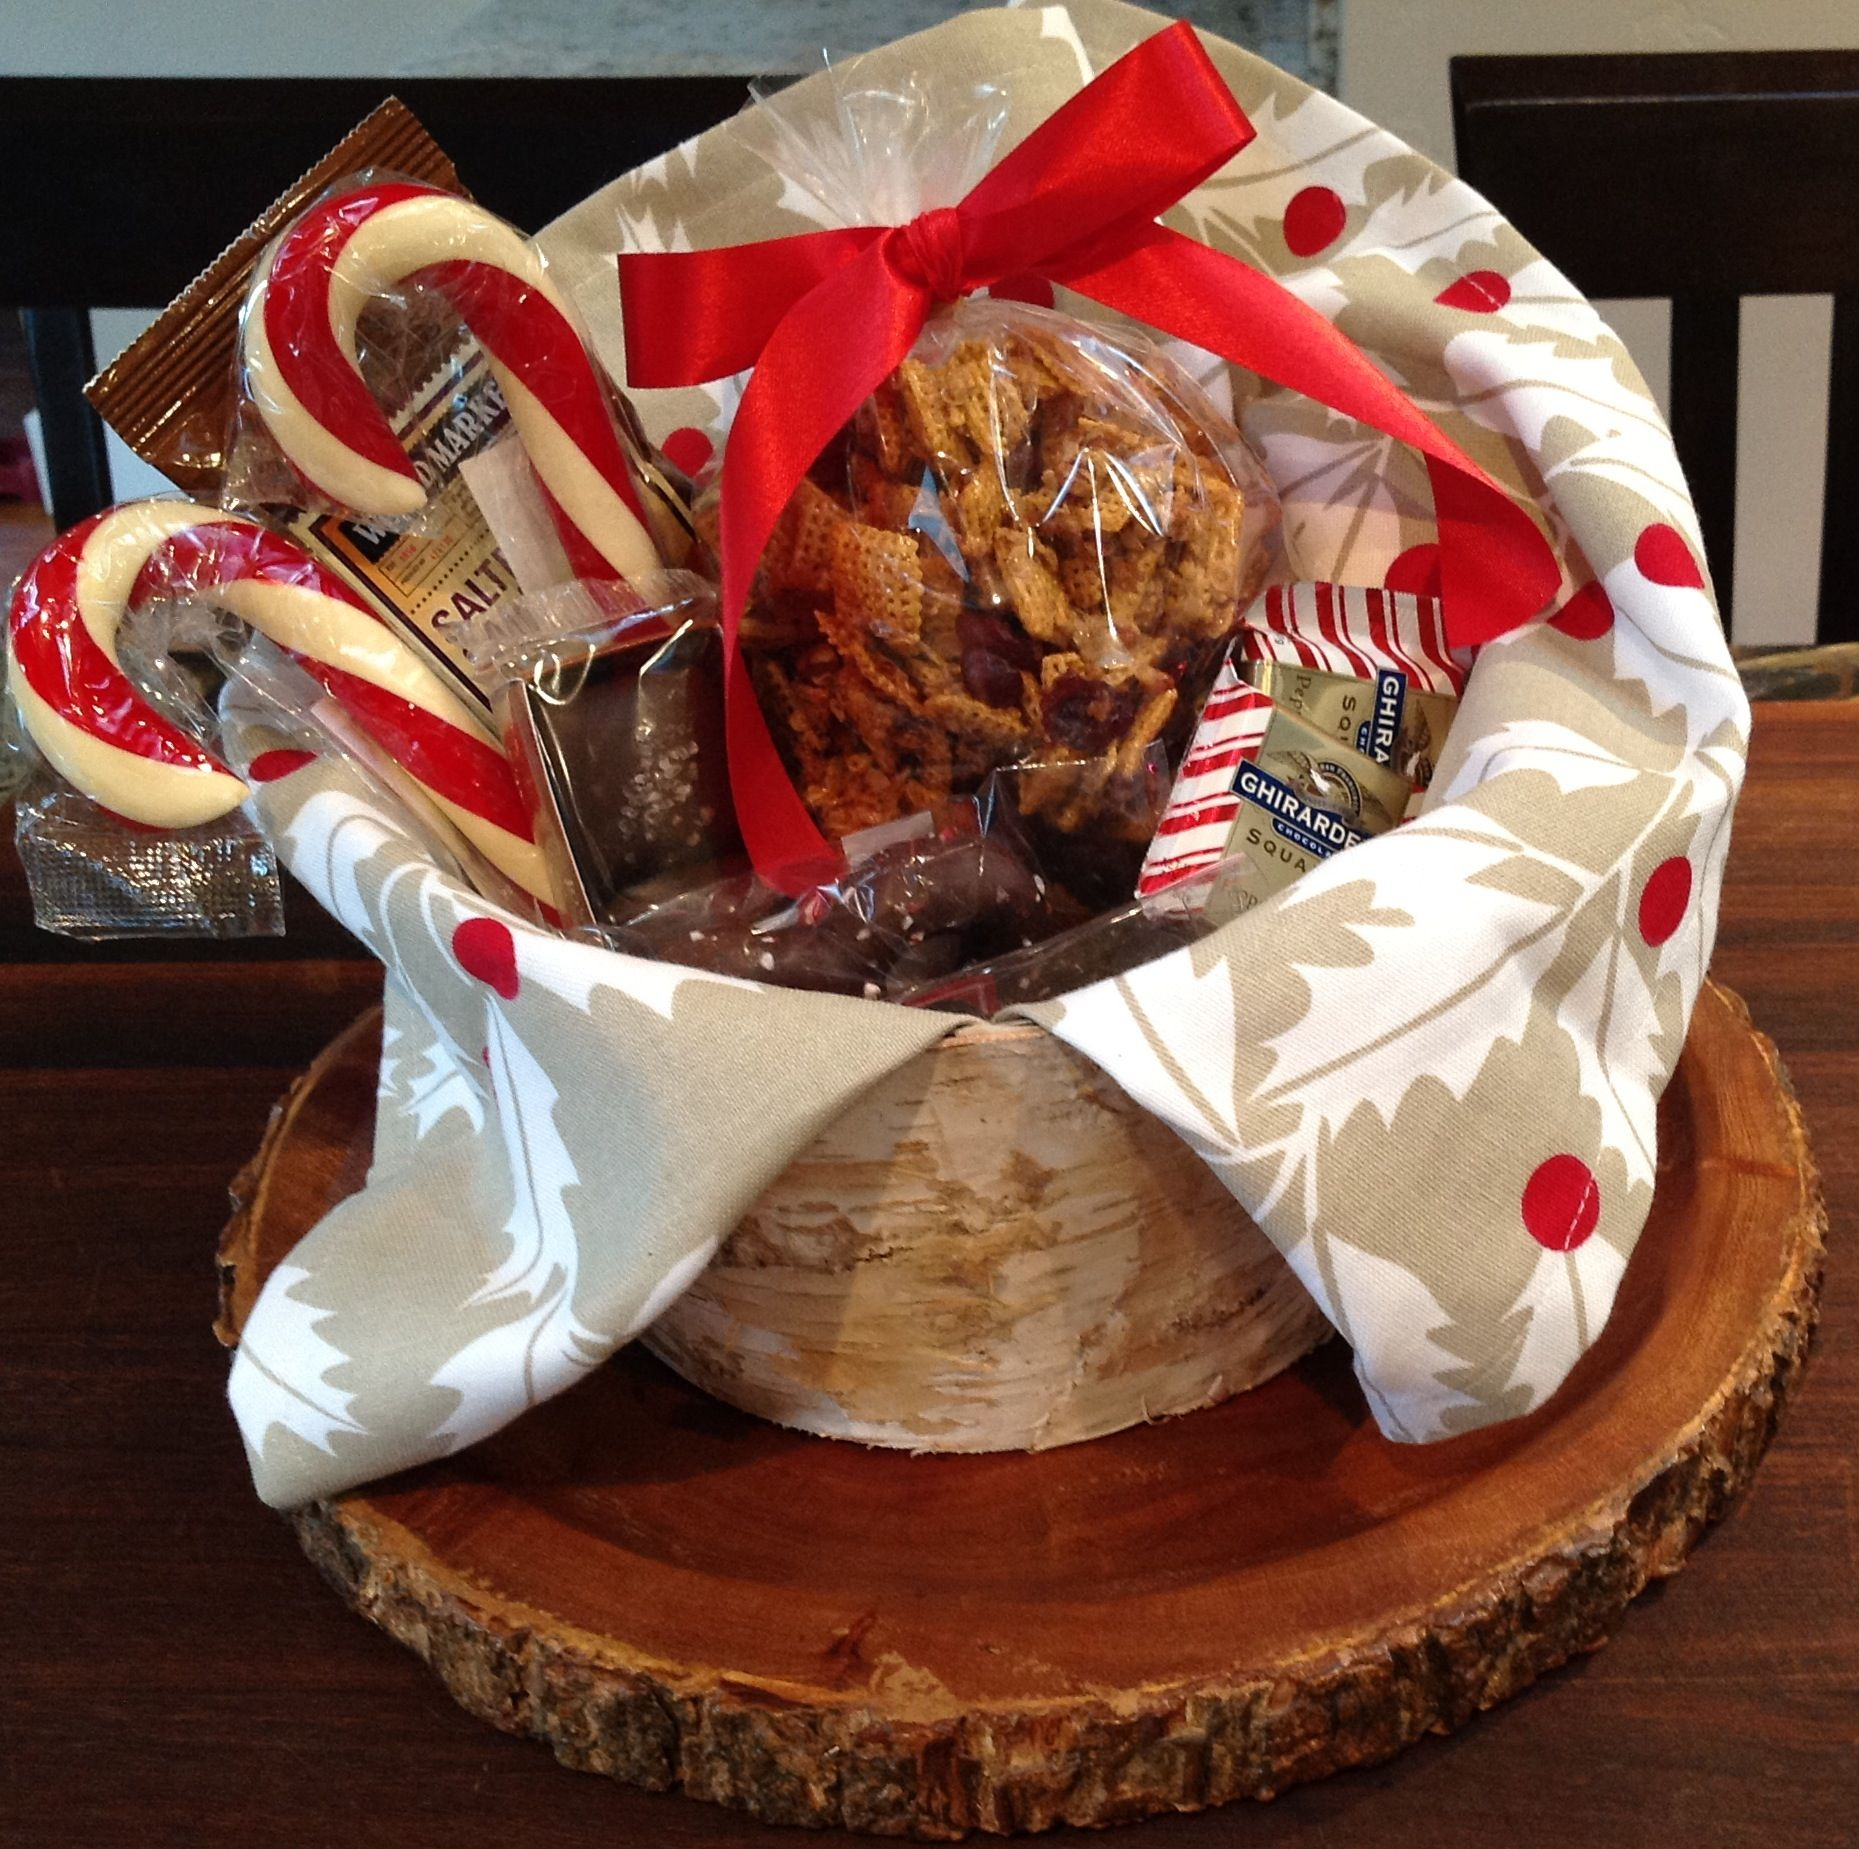 Christmas gift basket Towel Crate & Barrel Candy Cost